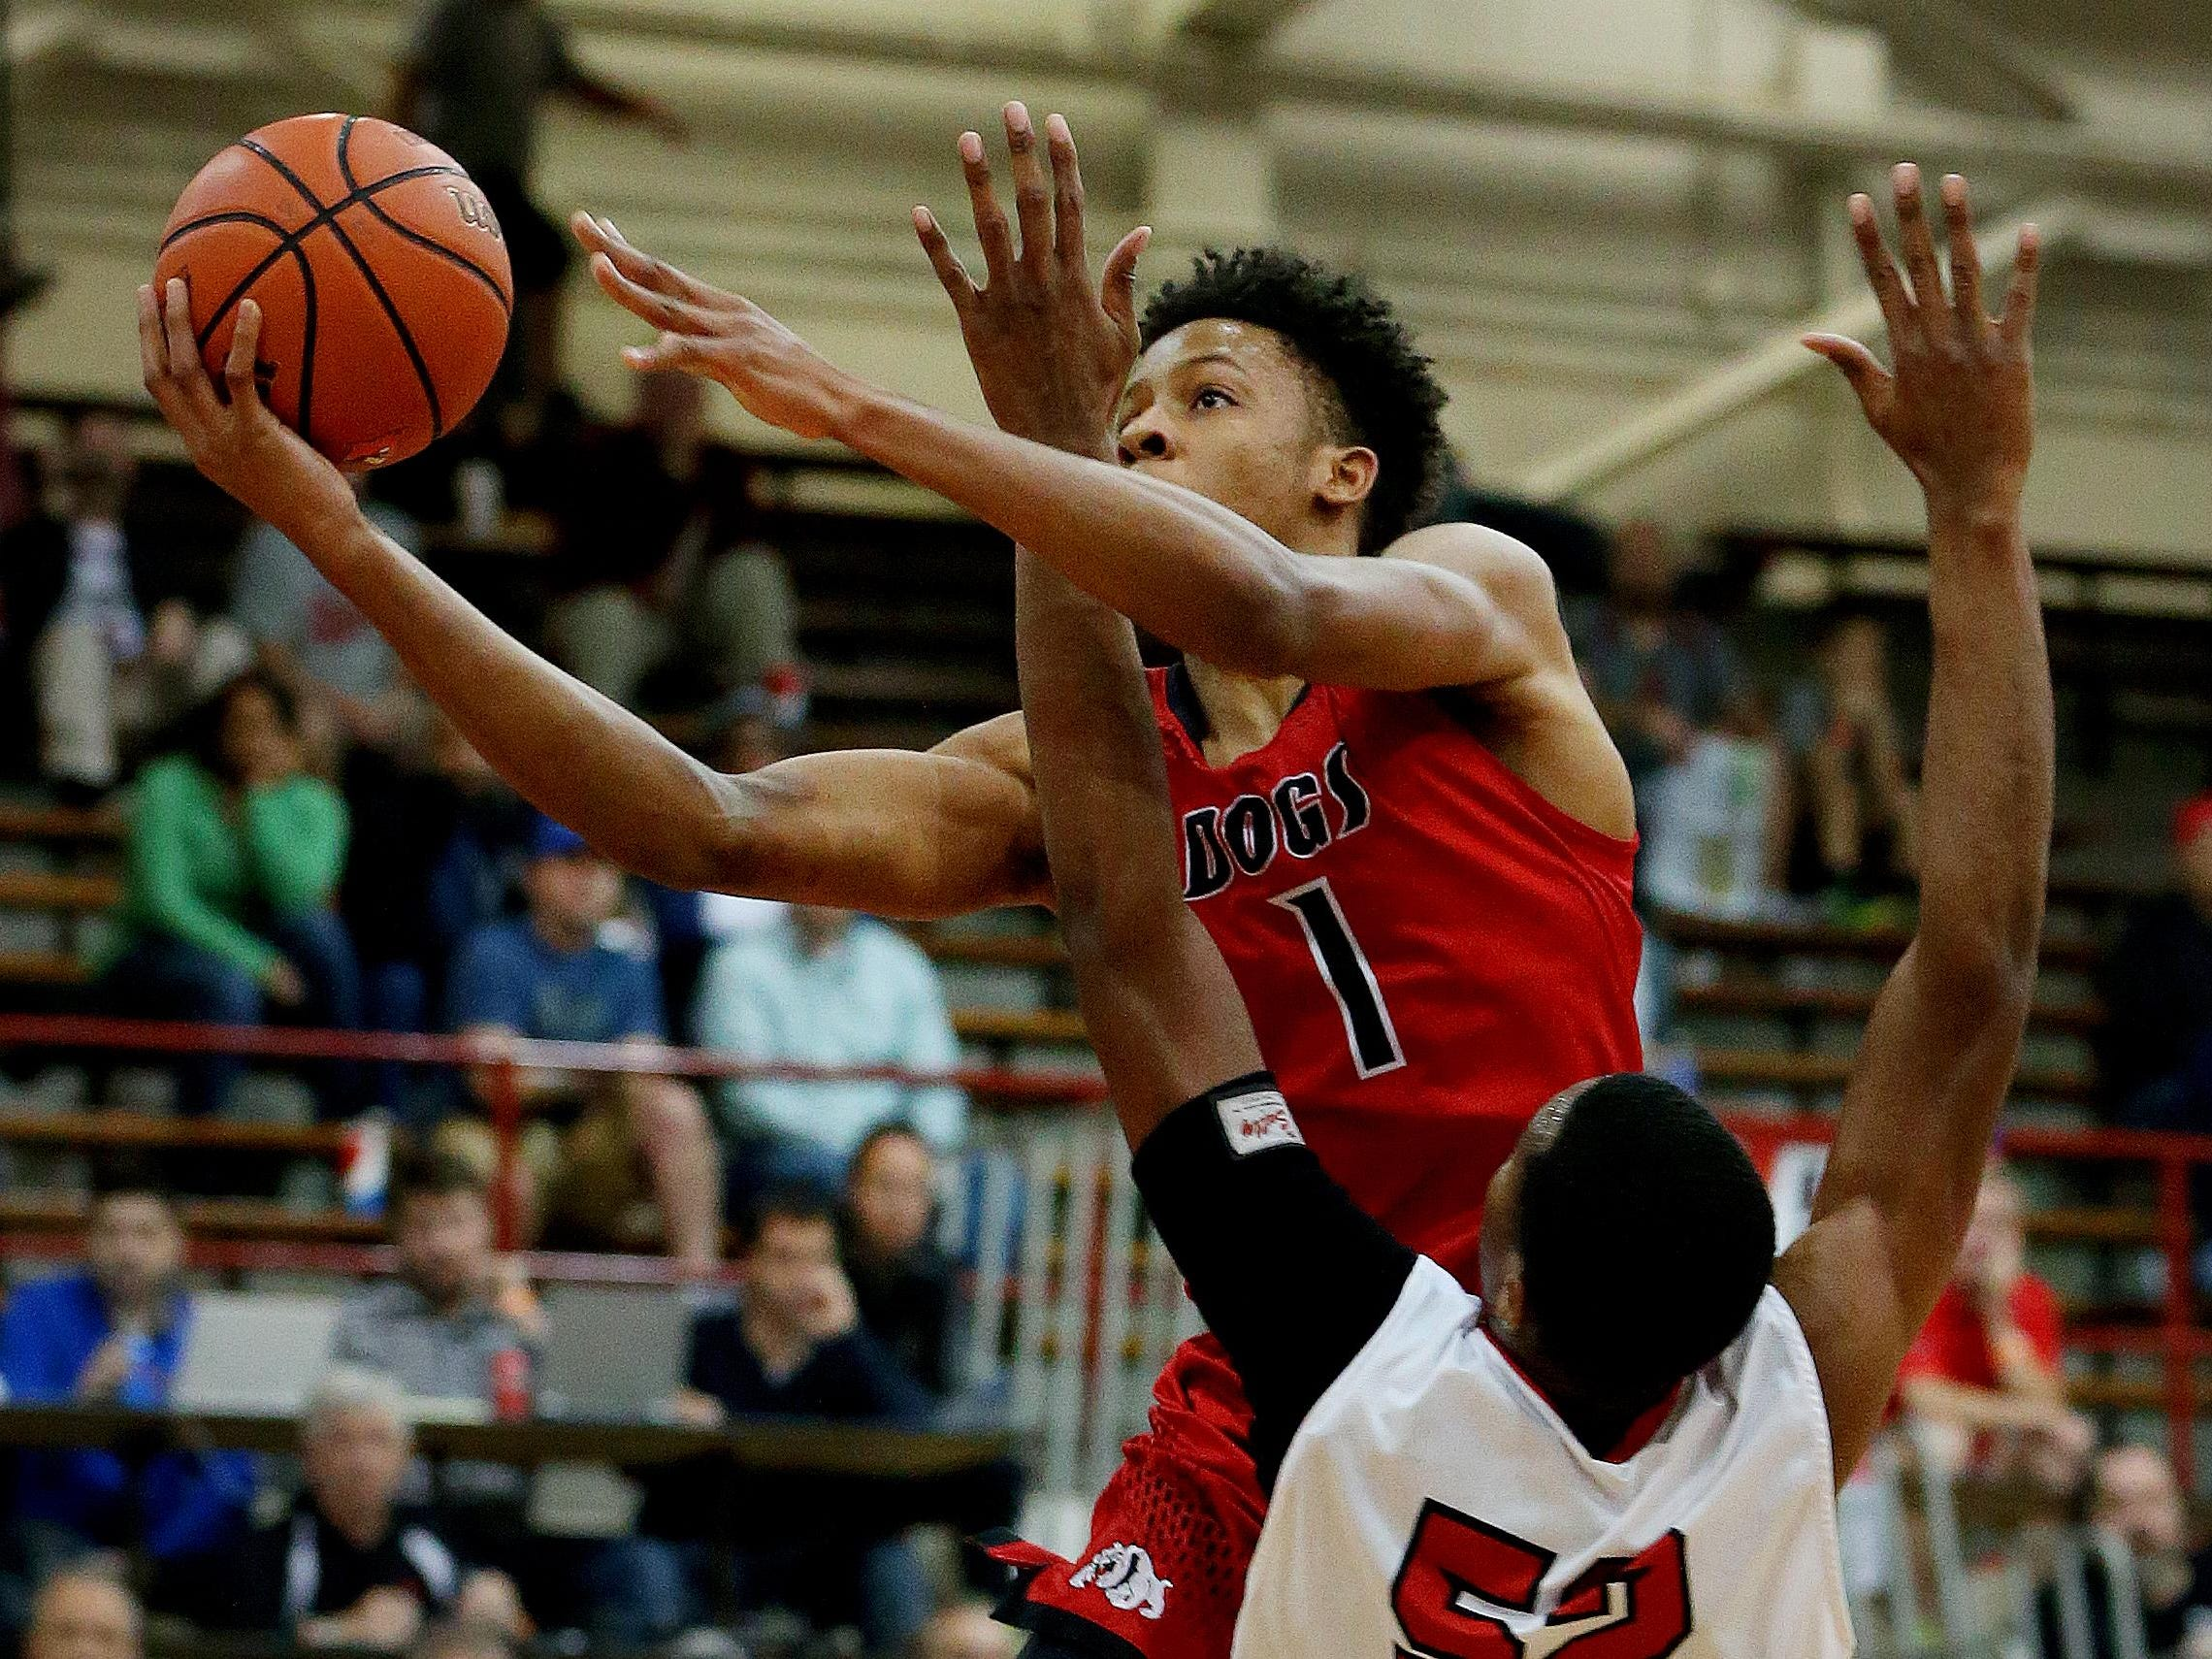 New Albany's Romeo Langford (1) goes up for the shot and is fouled by Pike's Durante Lee (52) during the Tip Off Classic on Dec. 12, 2015.